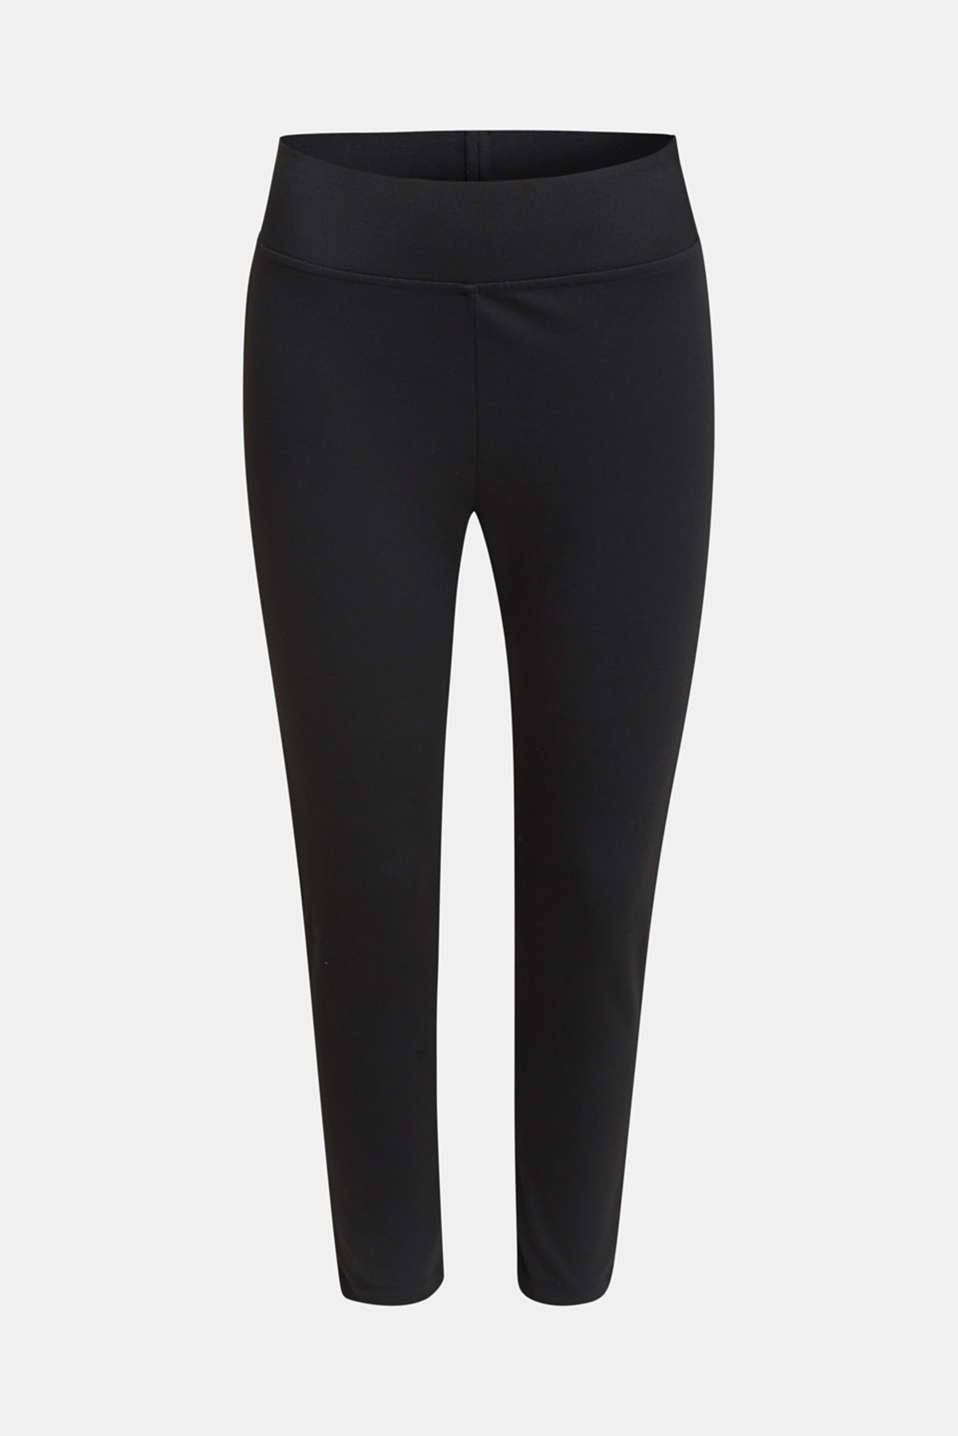 Esprit - Ankle-length leggings with a comfy waistband